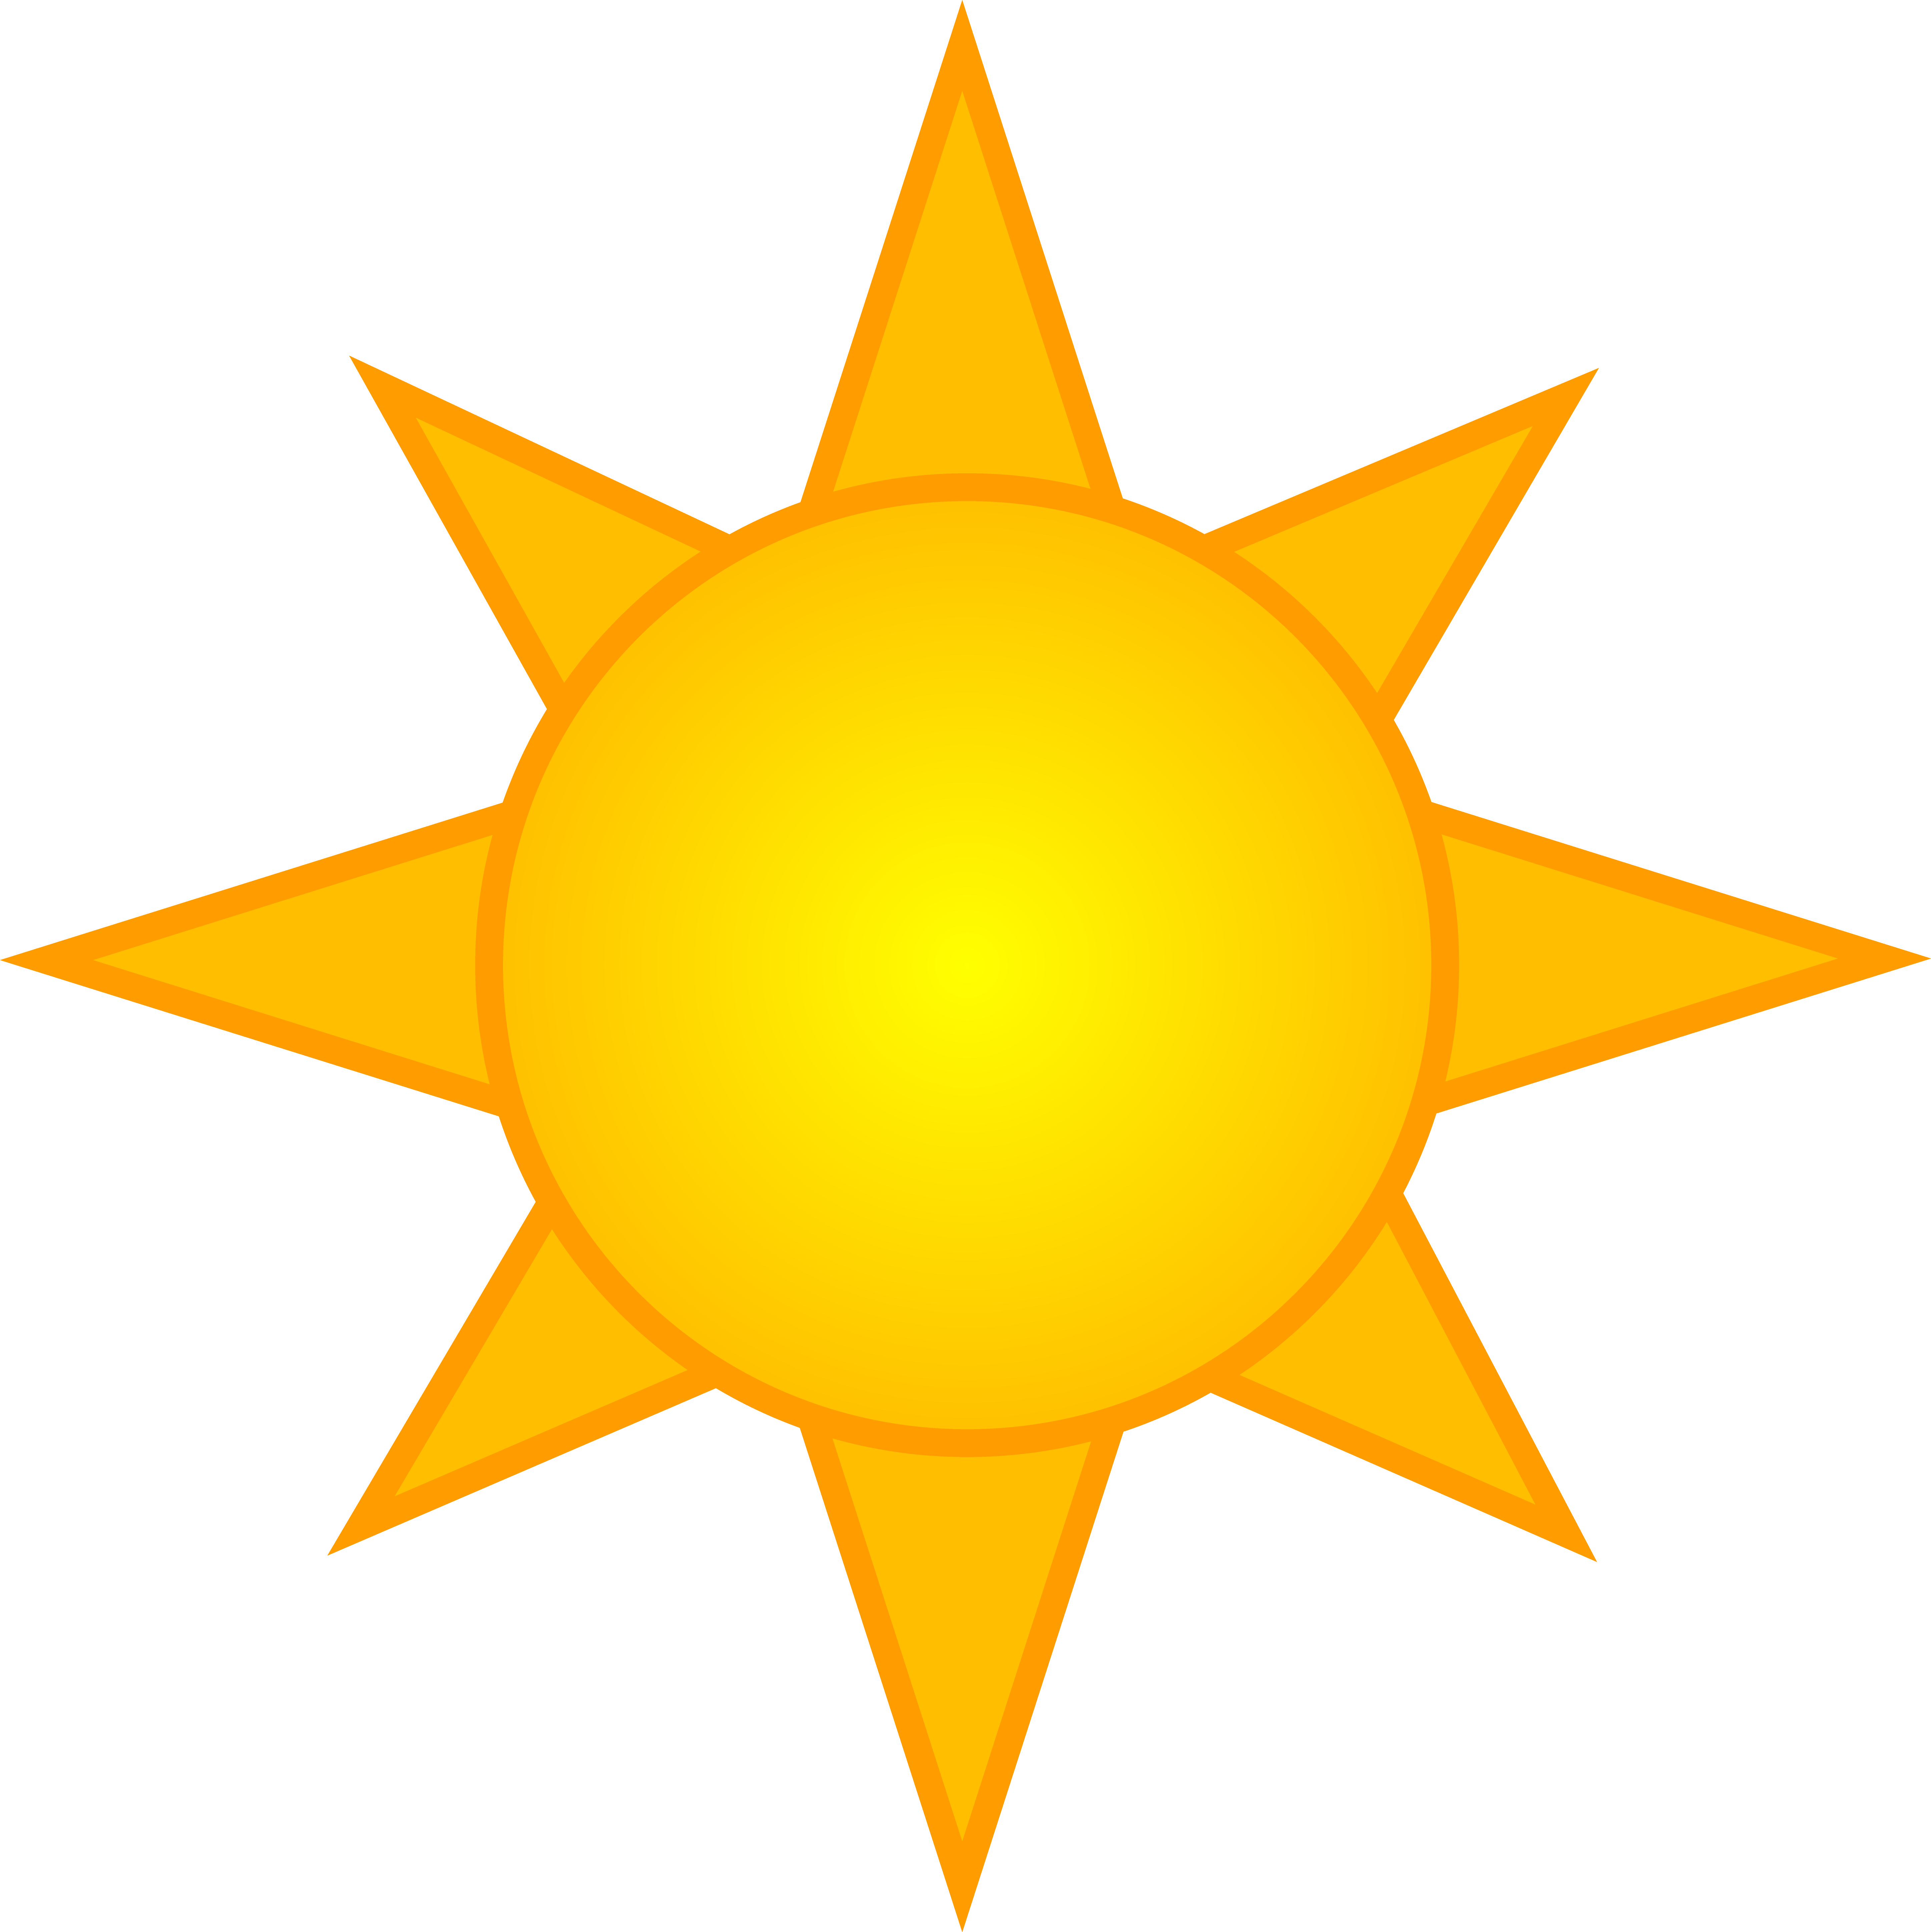 Sun clip art free download clipart best Drawing images free download